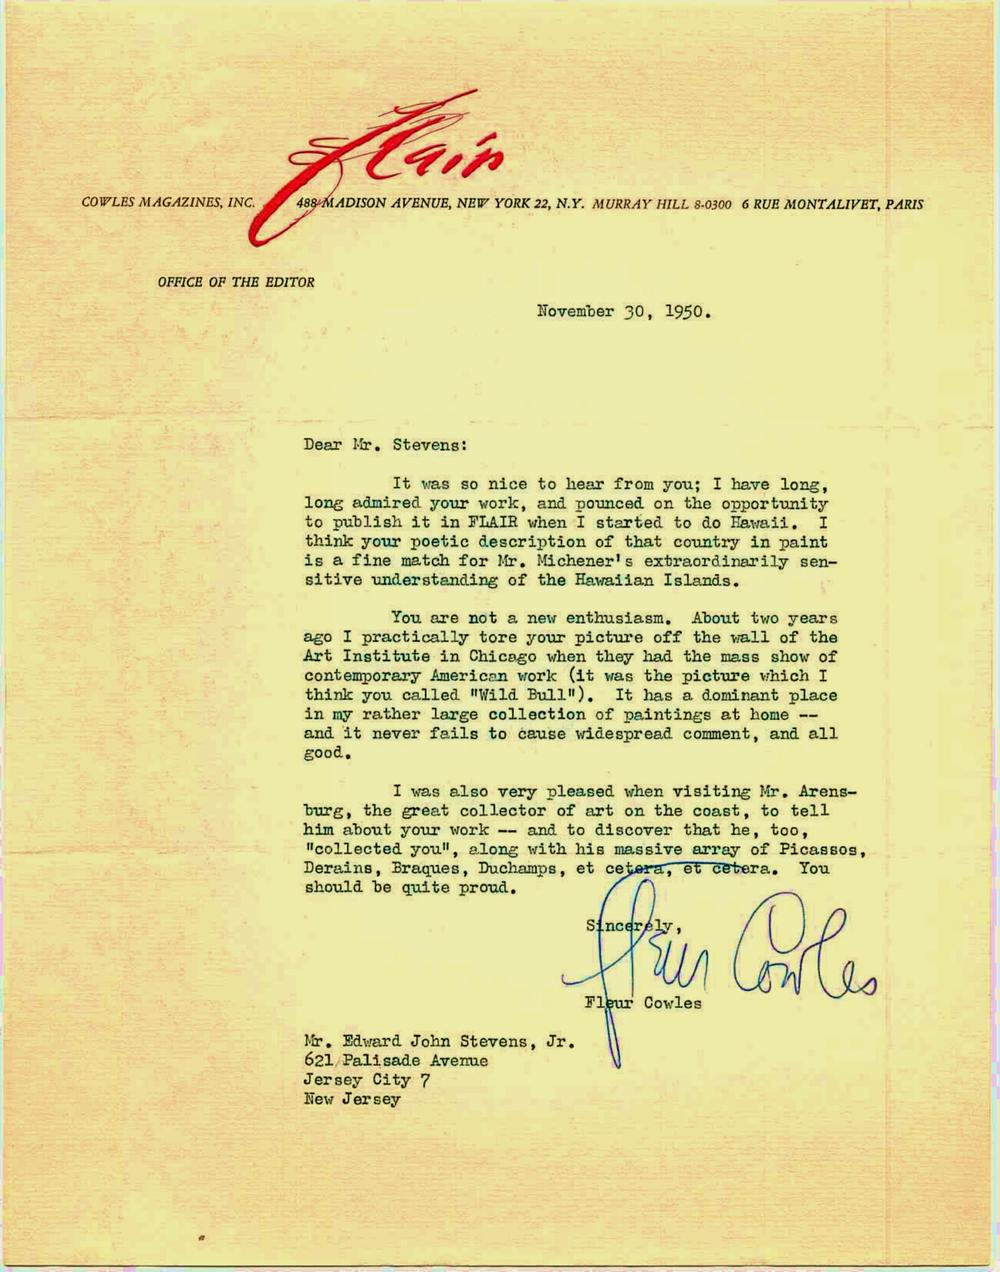 Letter from Fleur Cowles to Edward John Stevens, Jr., 1950.